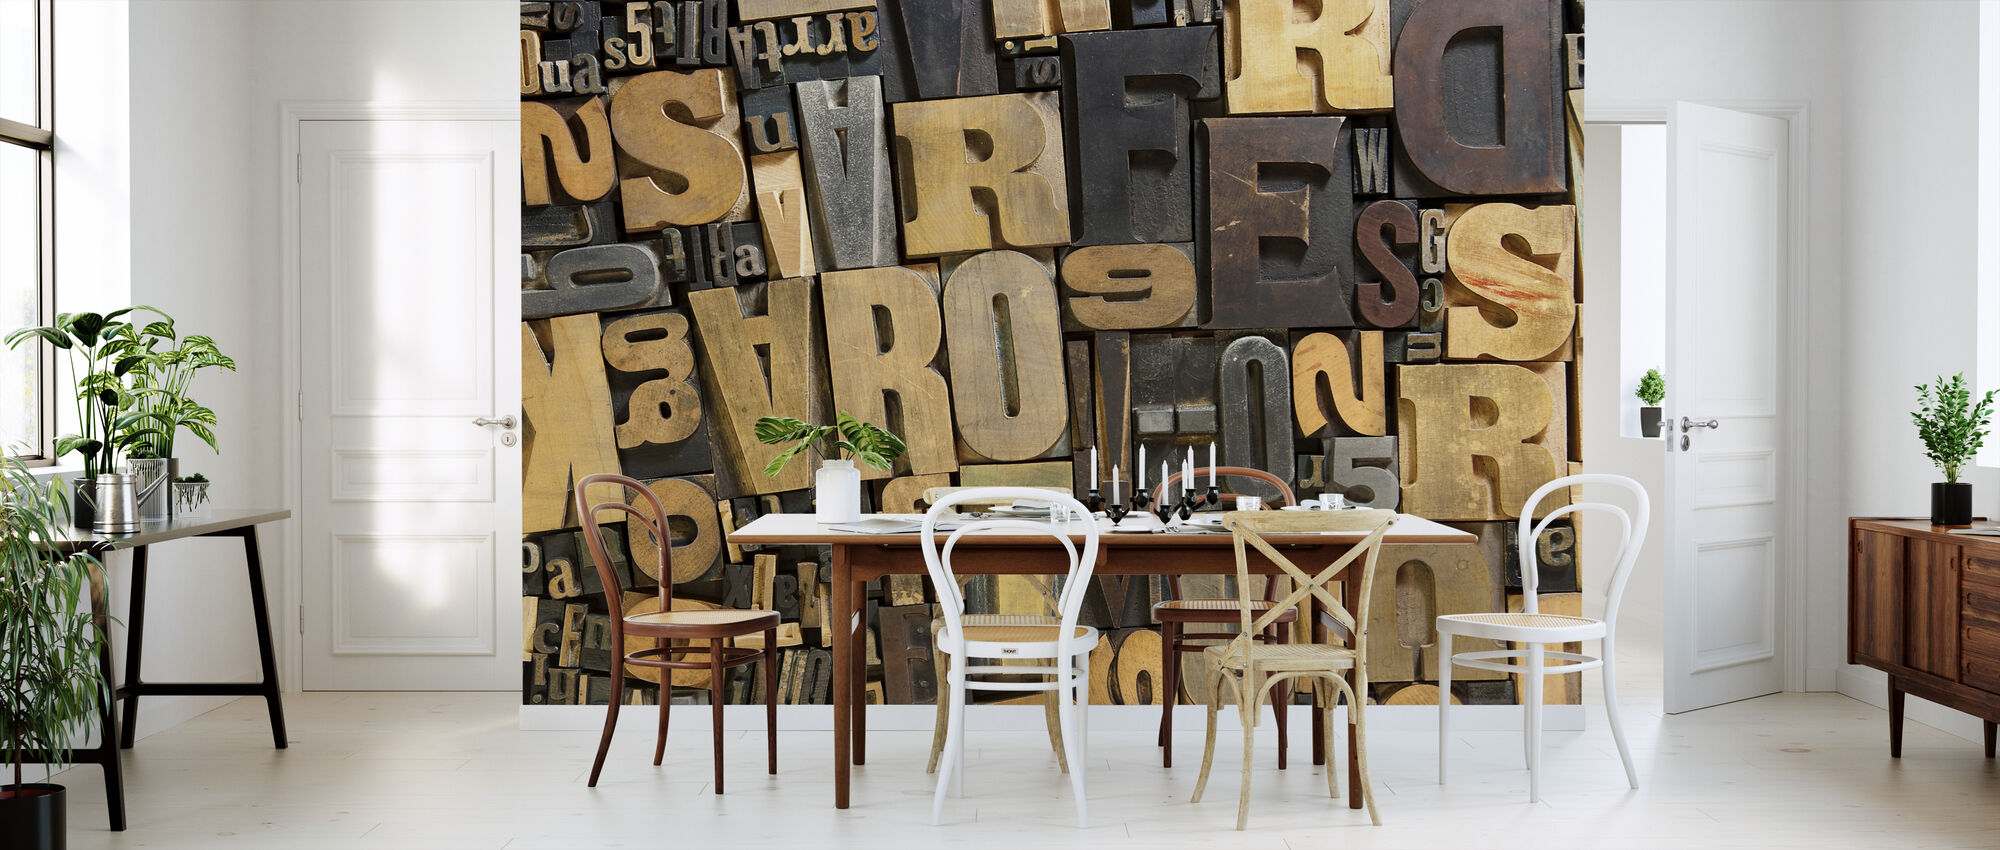 Vintage Wooden Letters - Wallpaper - Kitchen